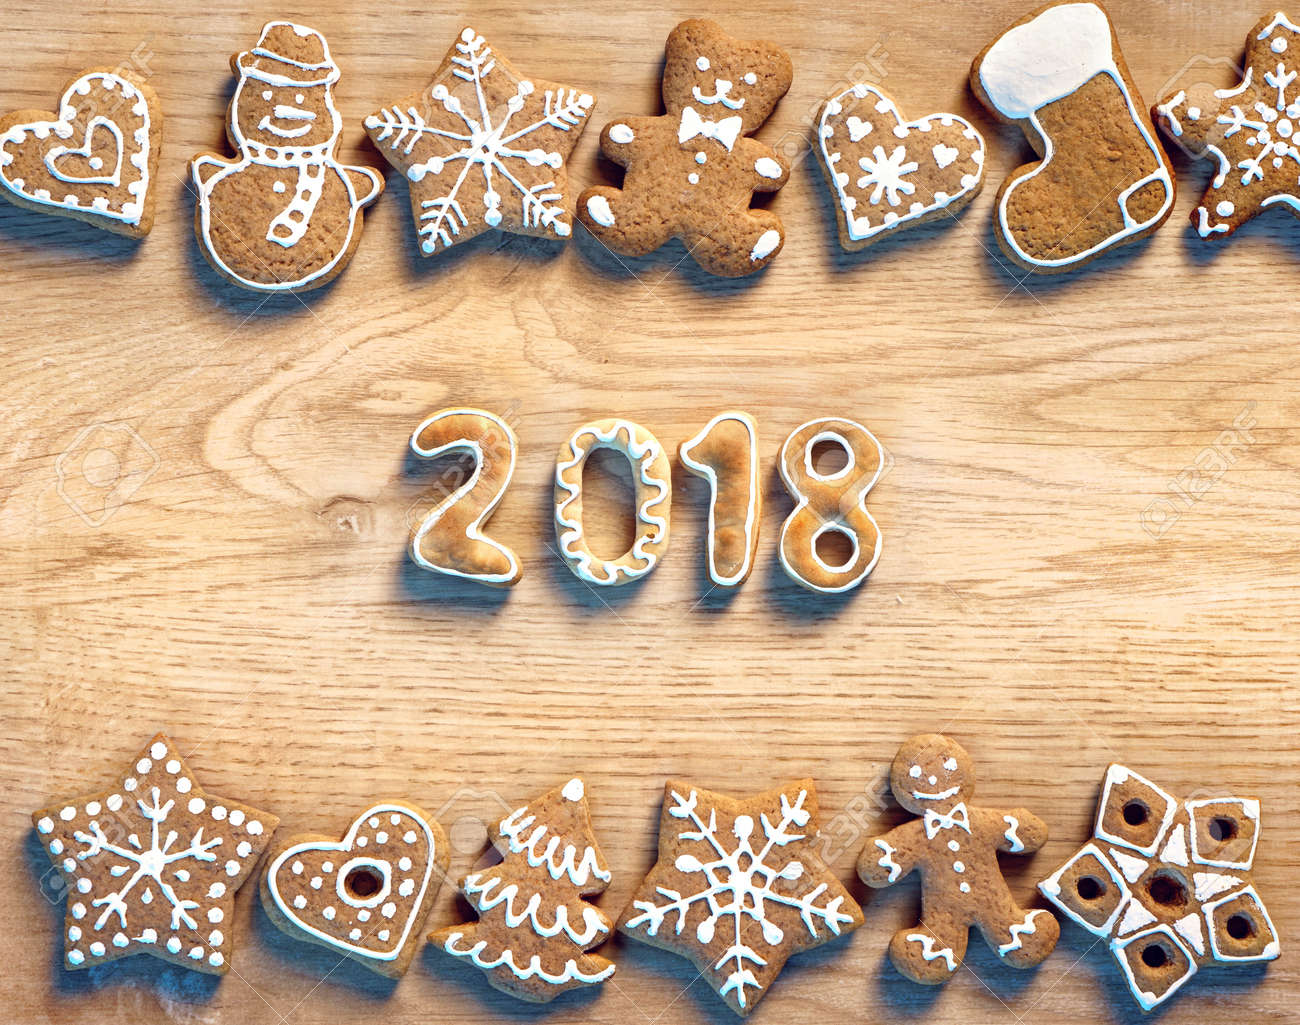 Christmas Cookies On Wooden Background 2018 Merry Christmas